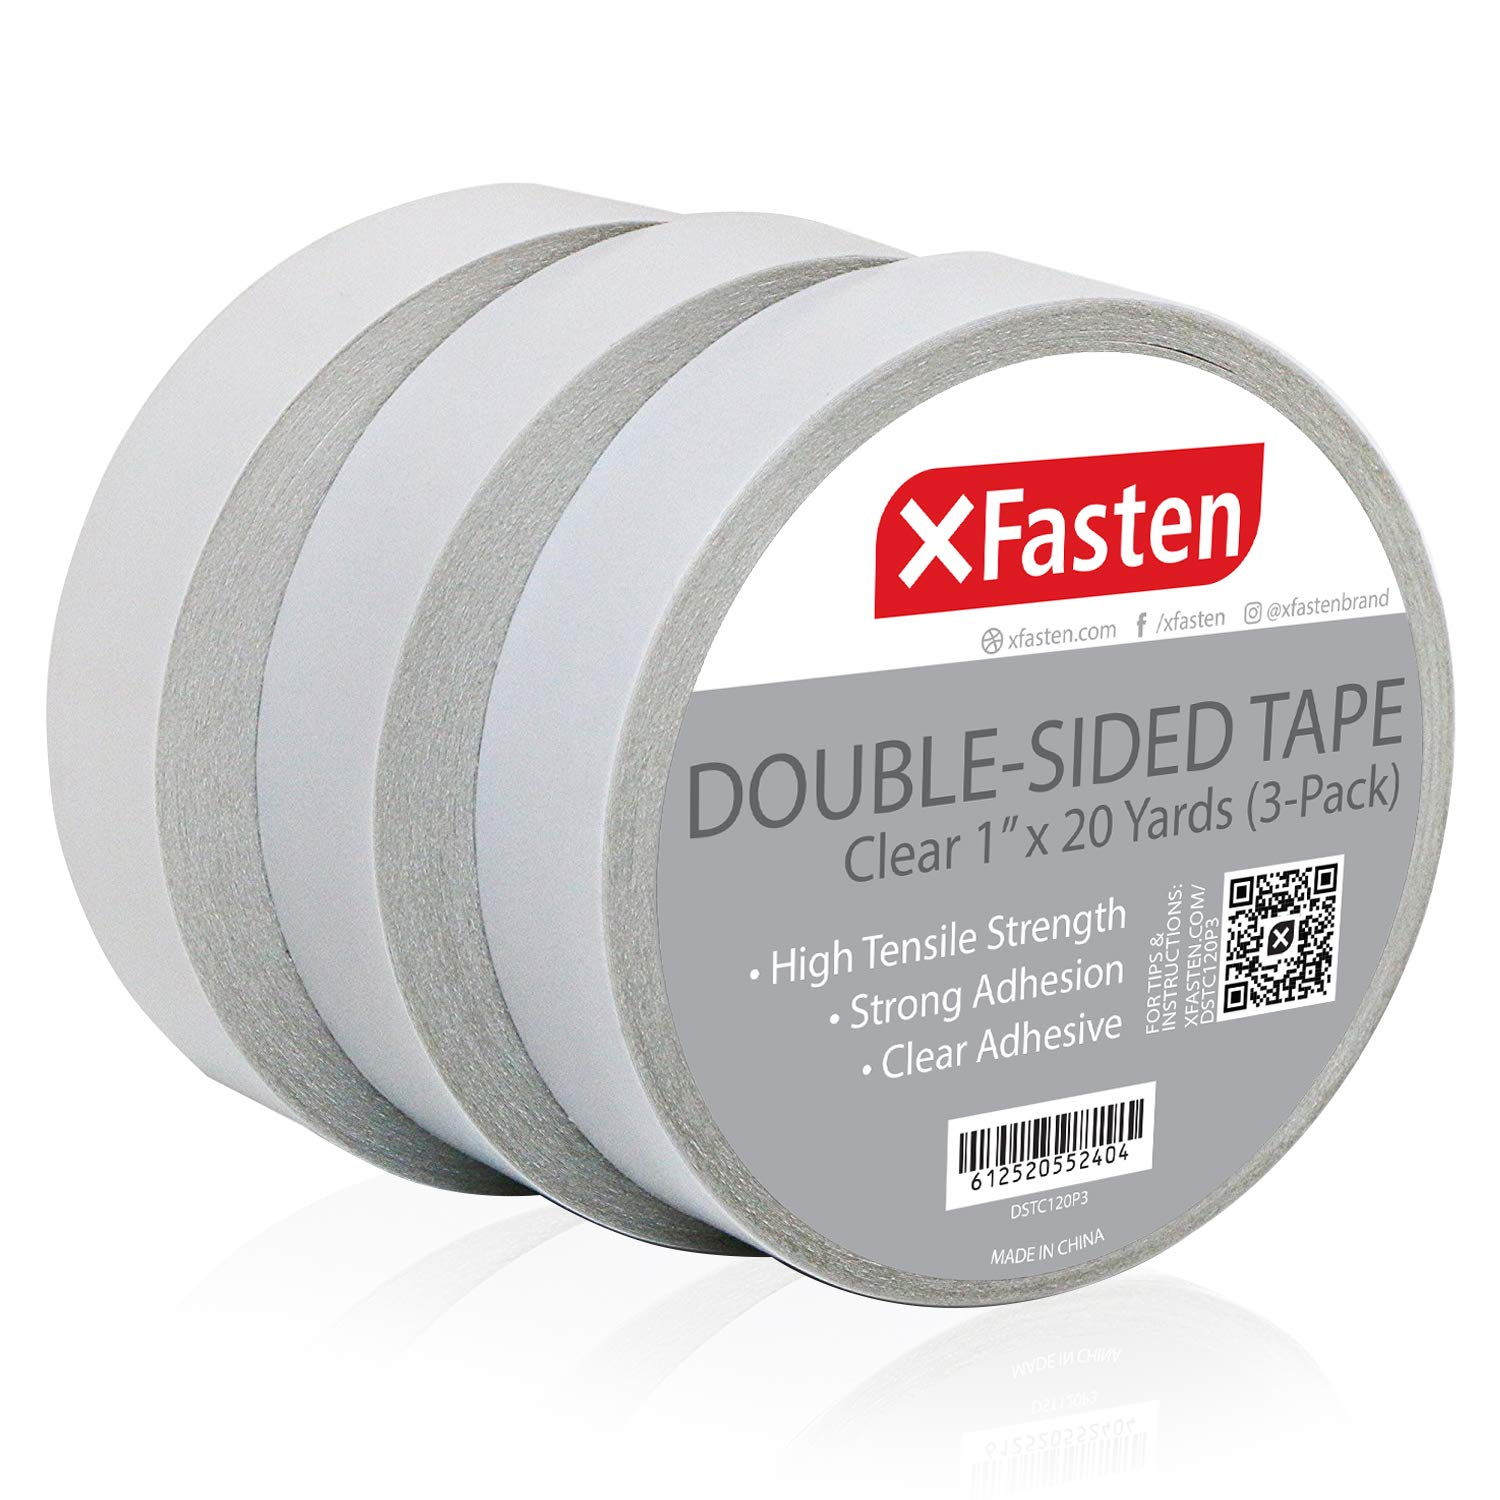 XFasten Double Sided Tape Clear, Removable, 1-Inch by 20-Yards, Pack of 3 Ideal as a Gift Wrap Tape, Holding Carpets, and Woodworking by XFasten